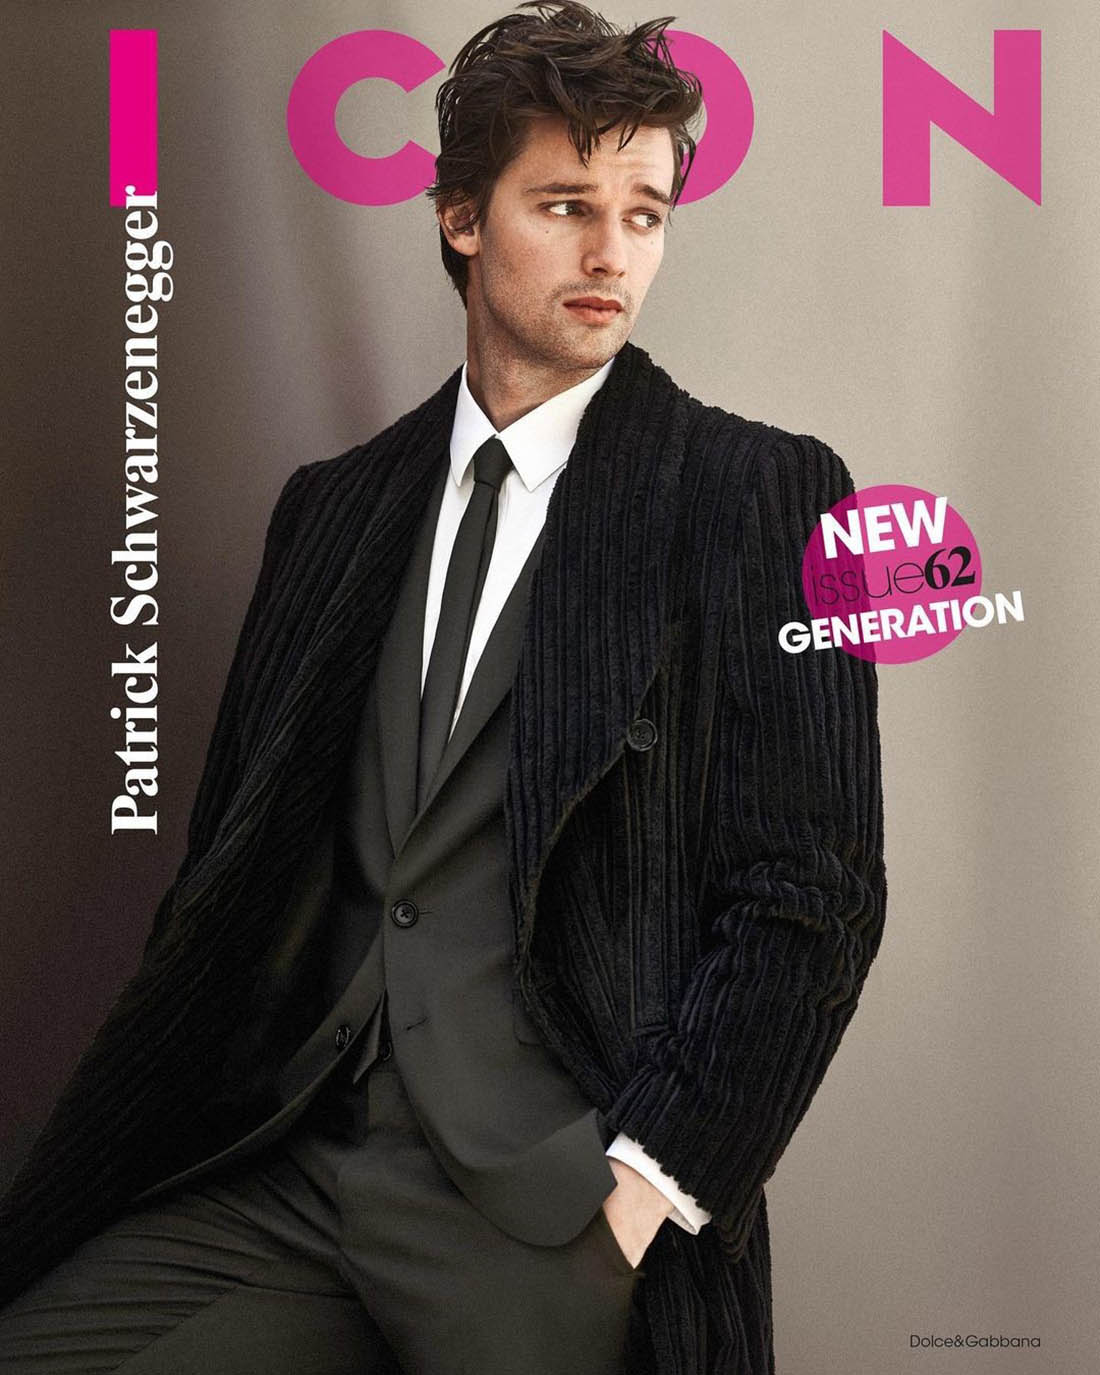 Patrick Schwarzenegger covers Icon Italia Issue 62 by John Balsom